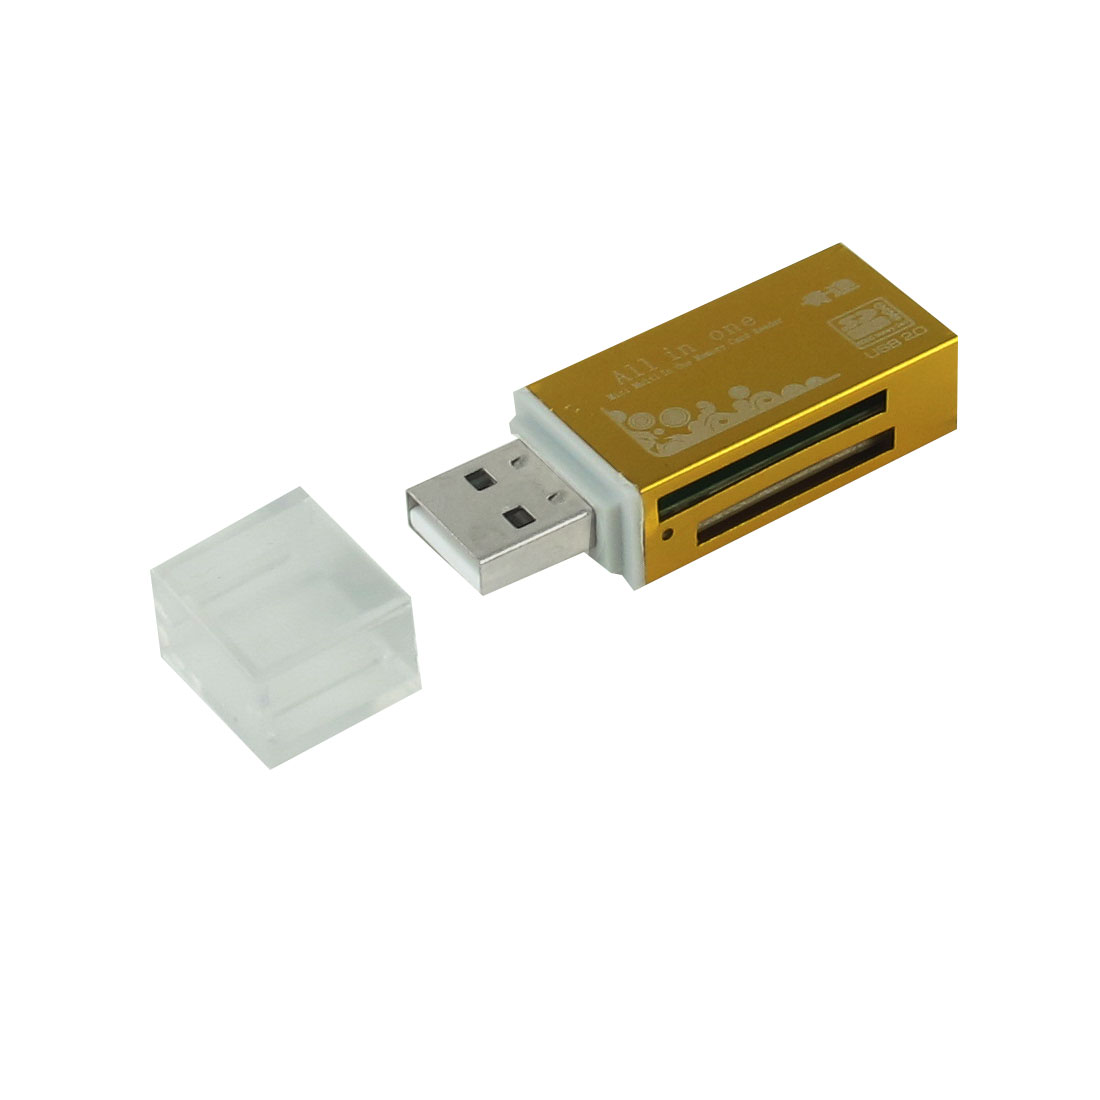 Gold Tone Plastic Shell Clear Lid USB 2.0 Interface SD TF MMC RSMMC Memory Card